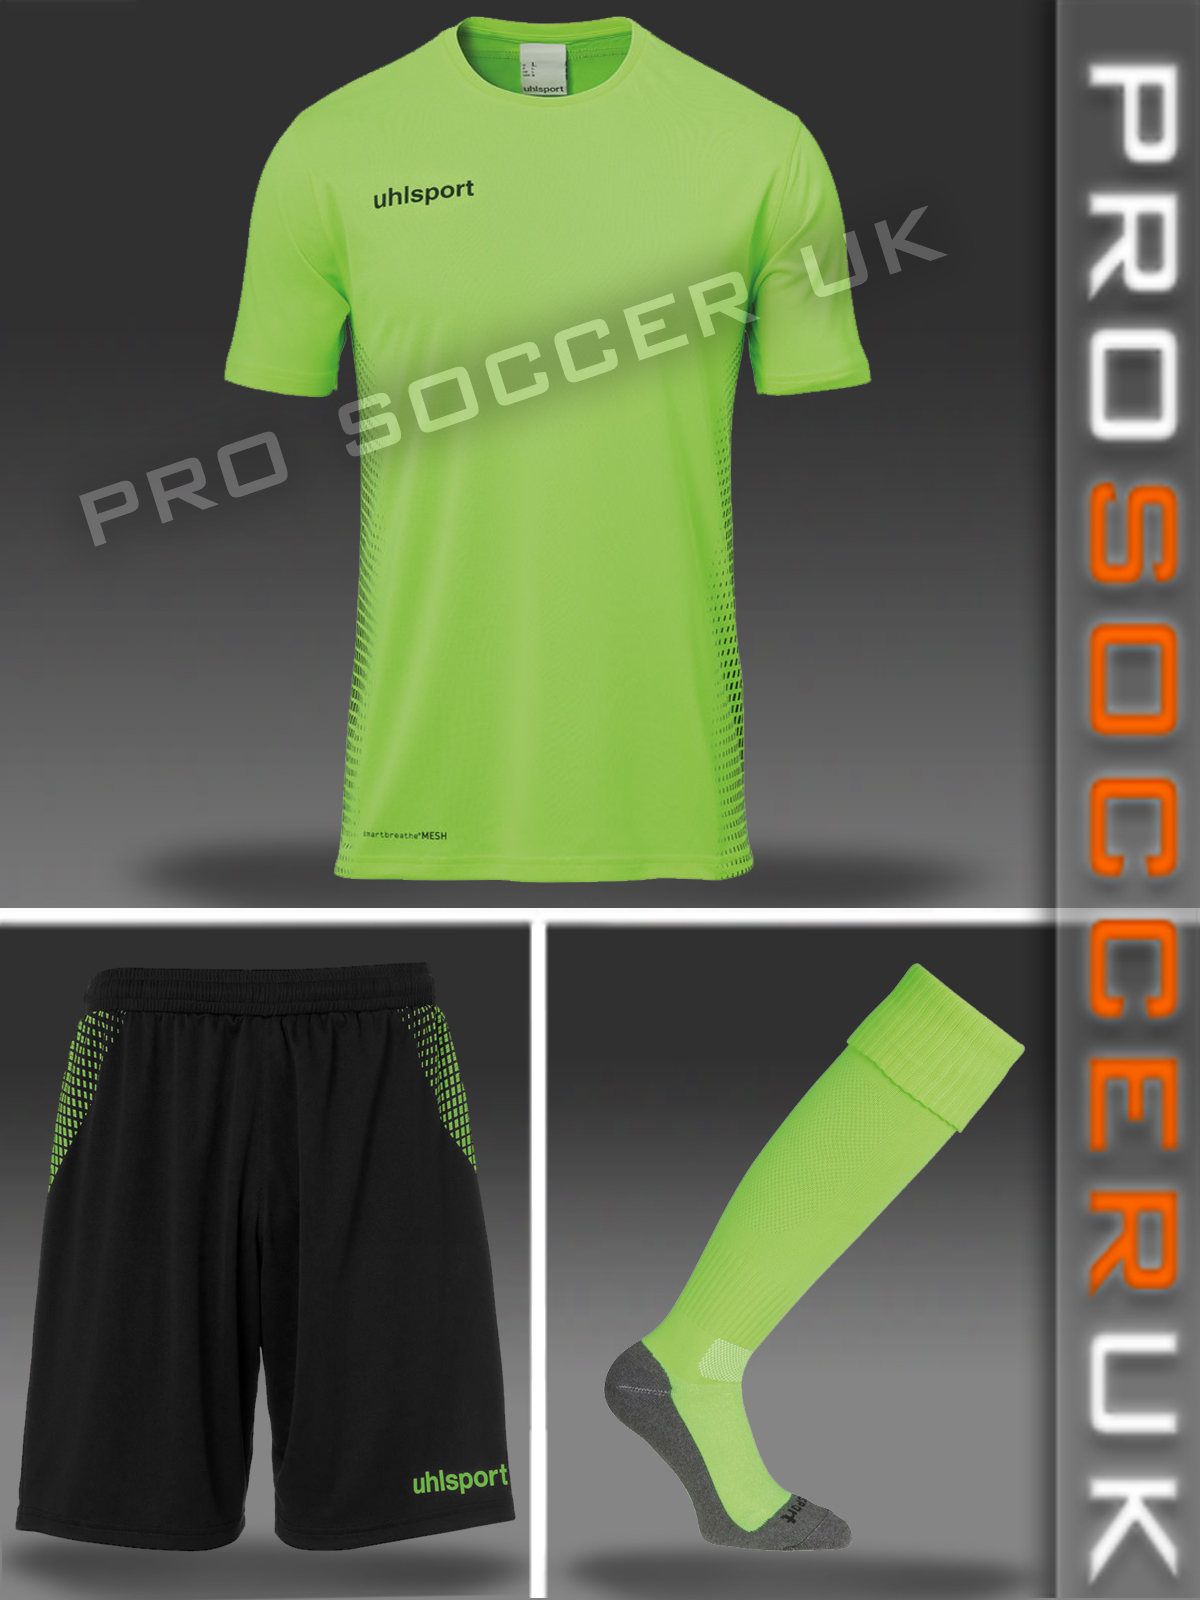 uhlsport Short Sleeve Football Kits